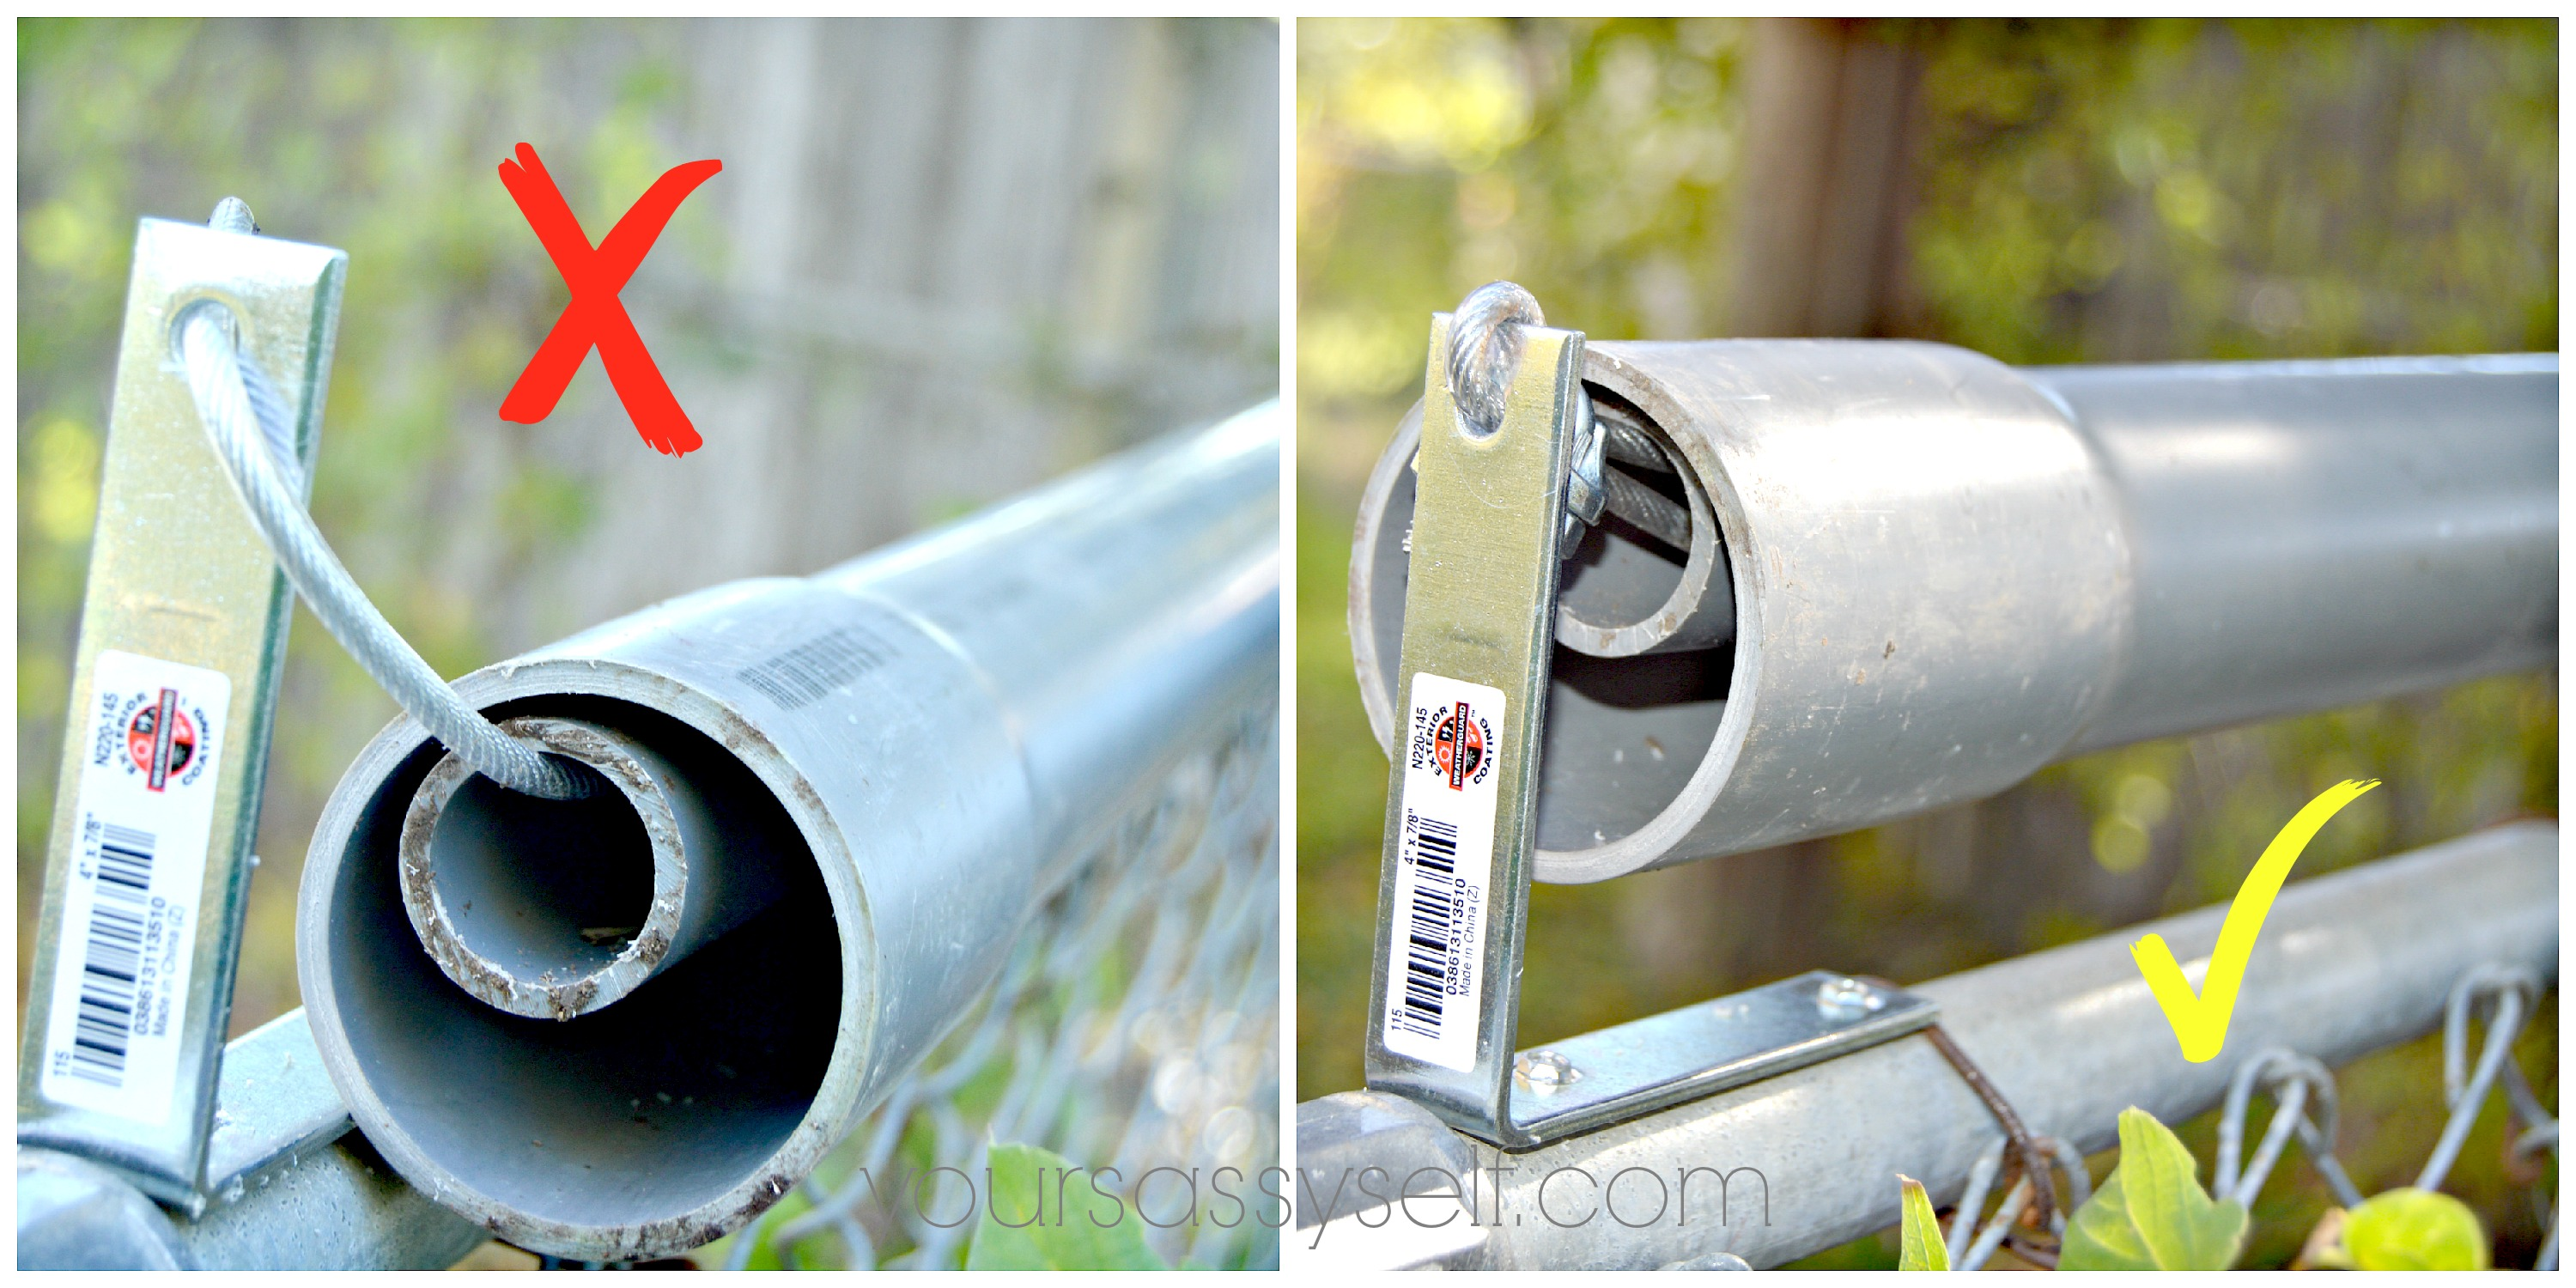 Roll Bar Fence DIY - Keep Your Pets In & Others Out - Your Sassy Self